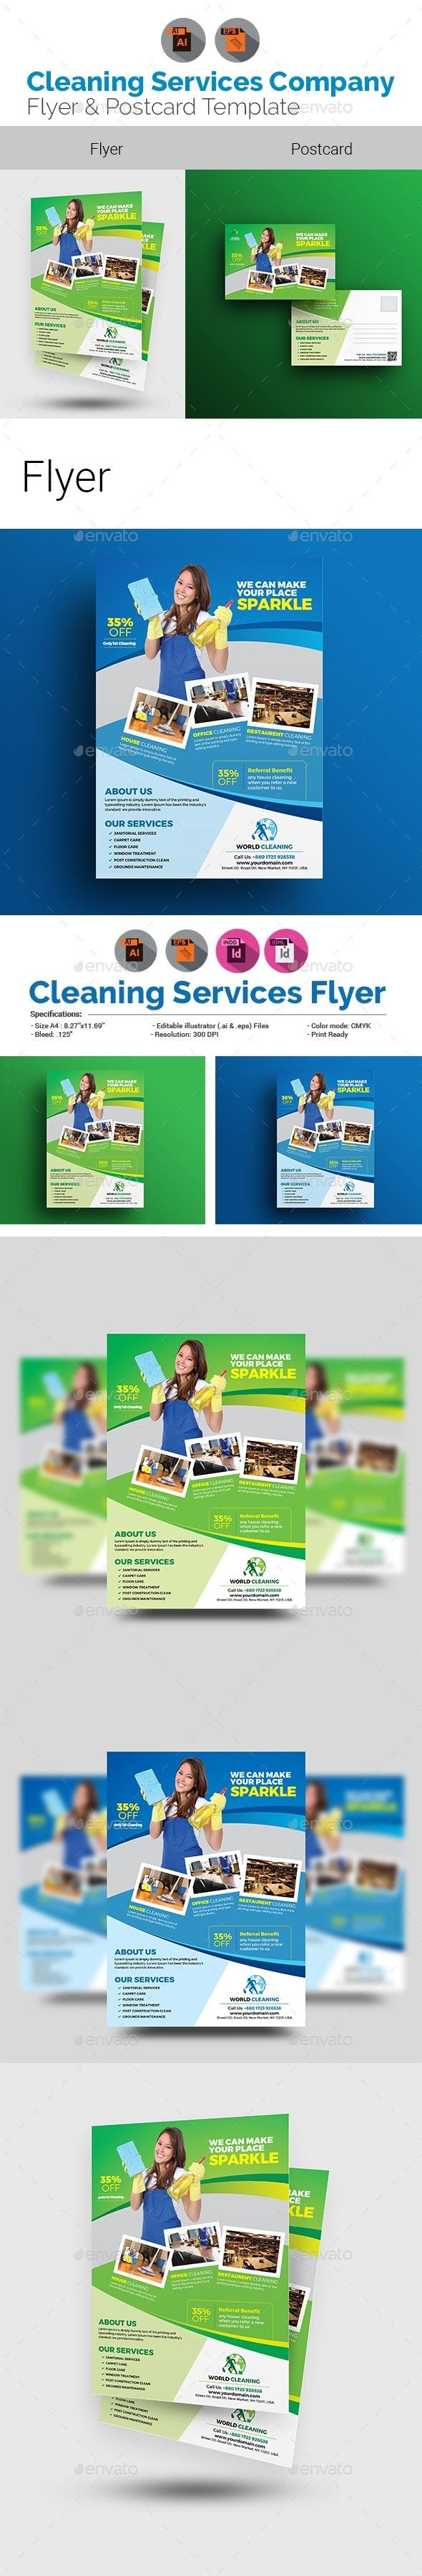 advert advertising bundle template clean clean services cleaning bundle cleaning company cleaning flyer with postcard